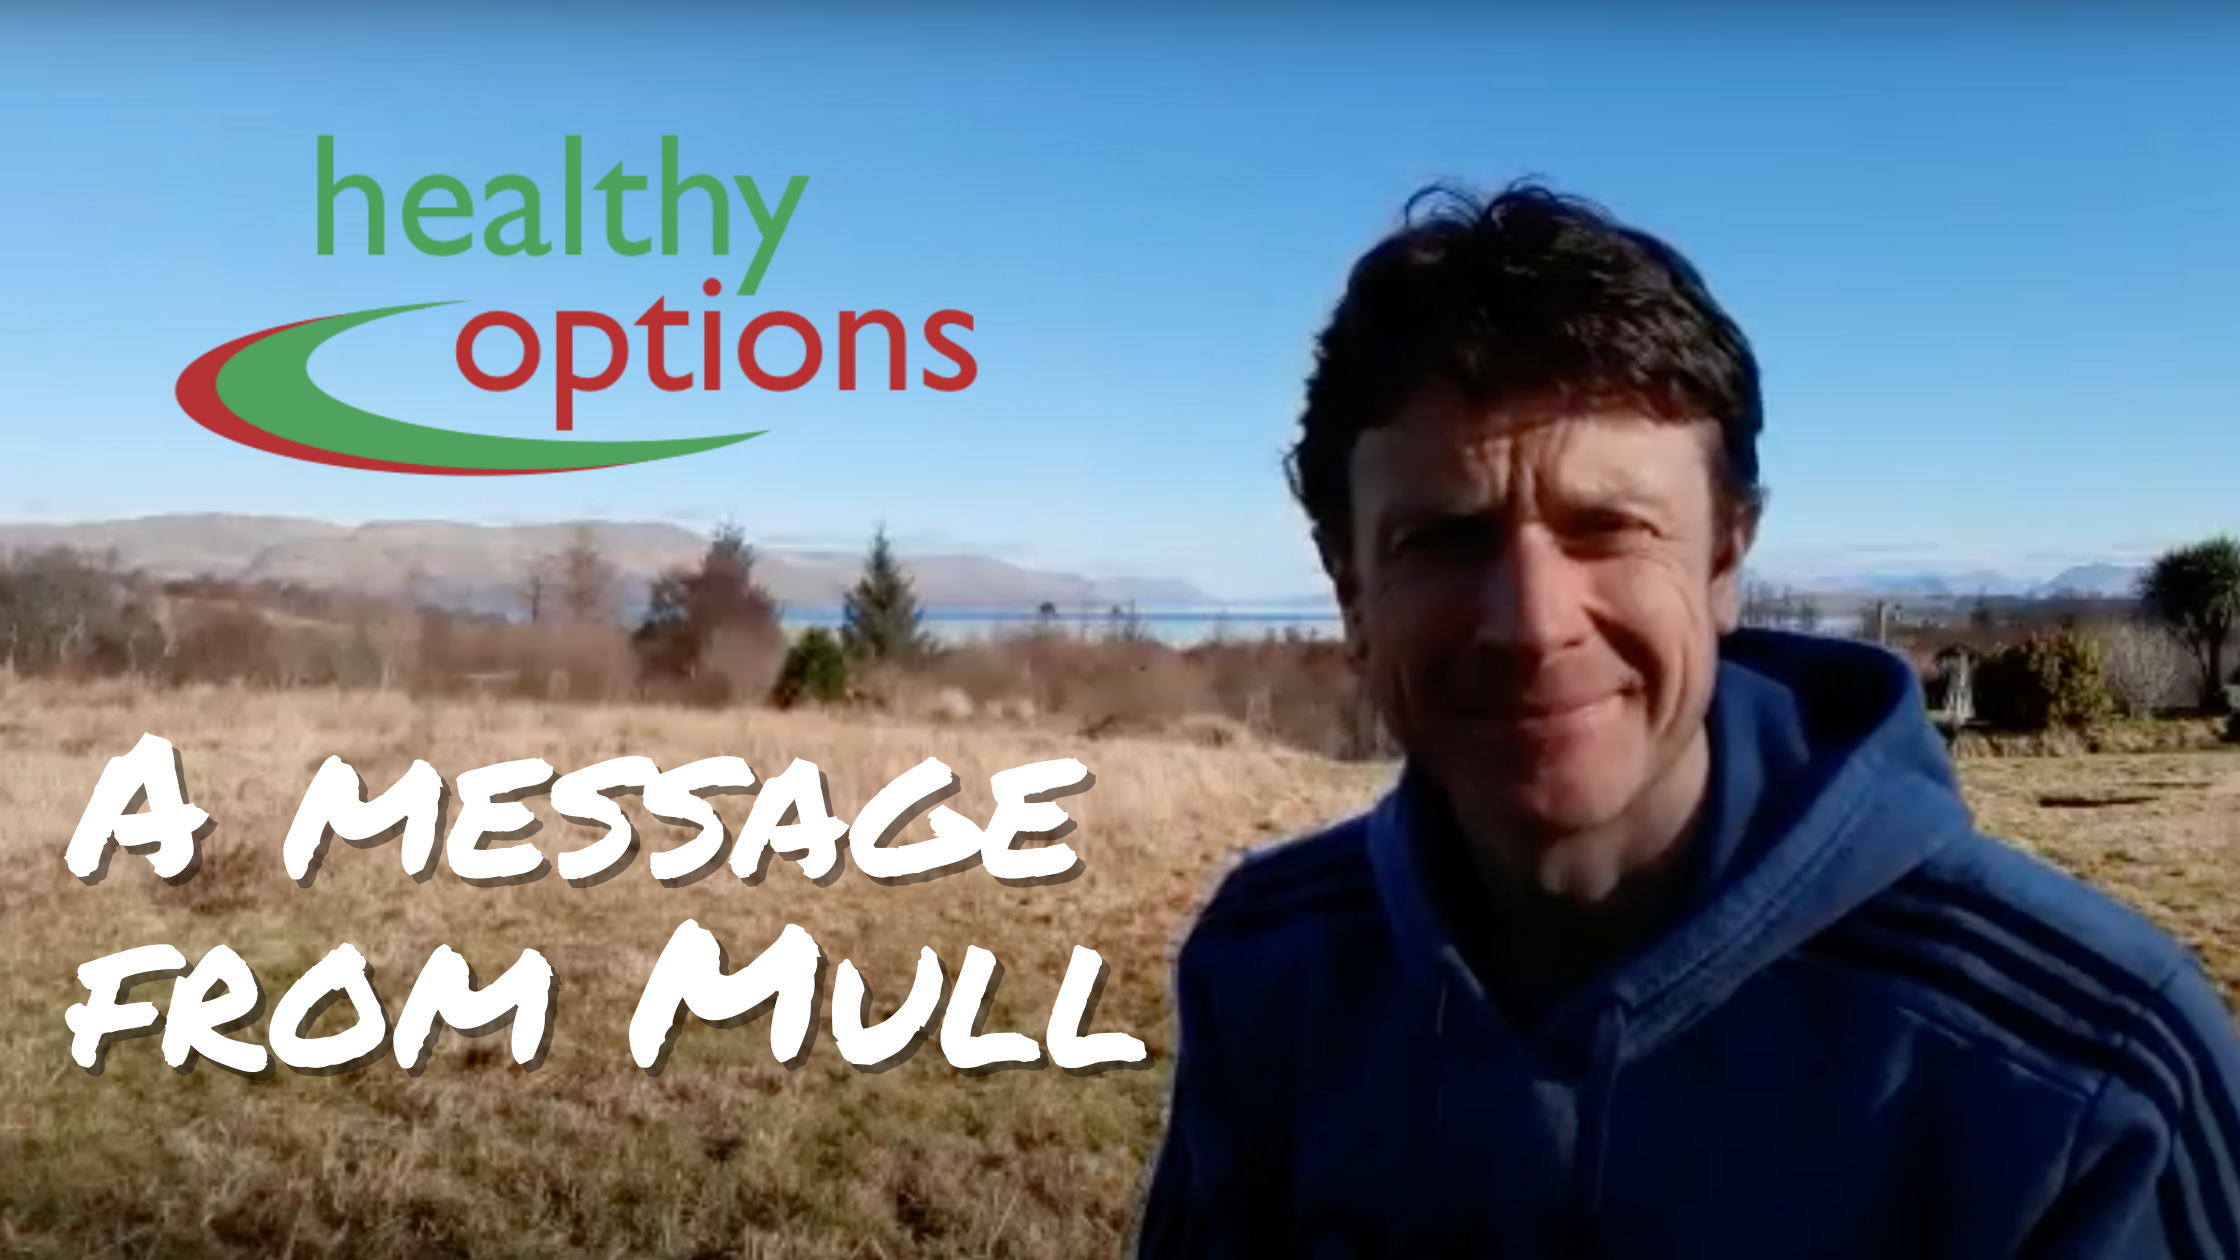 Take responsibility for your own health: Message from Mull